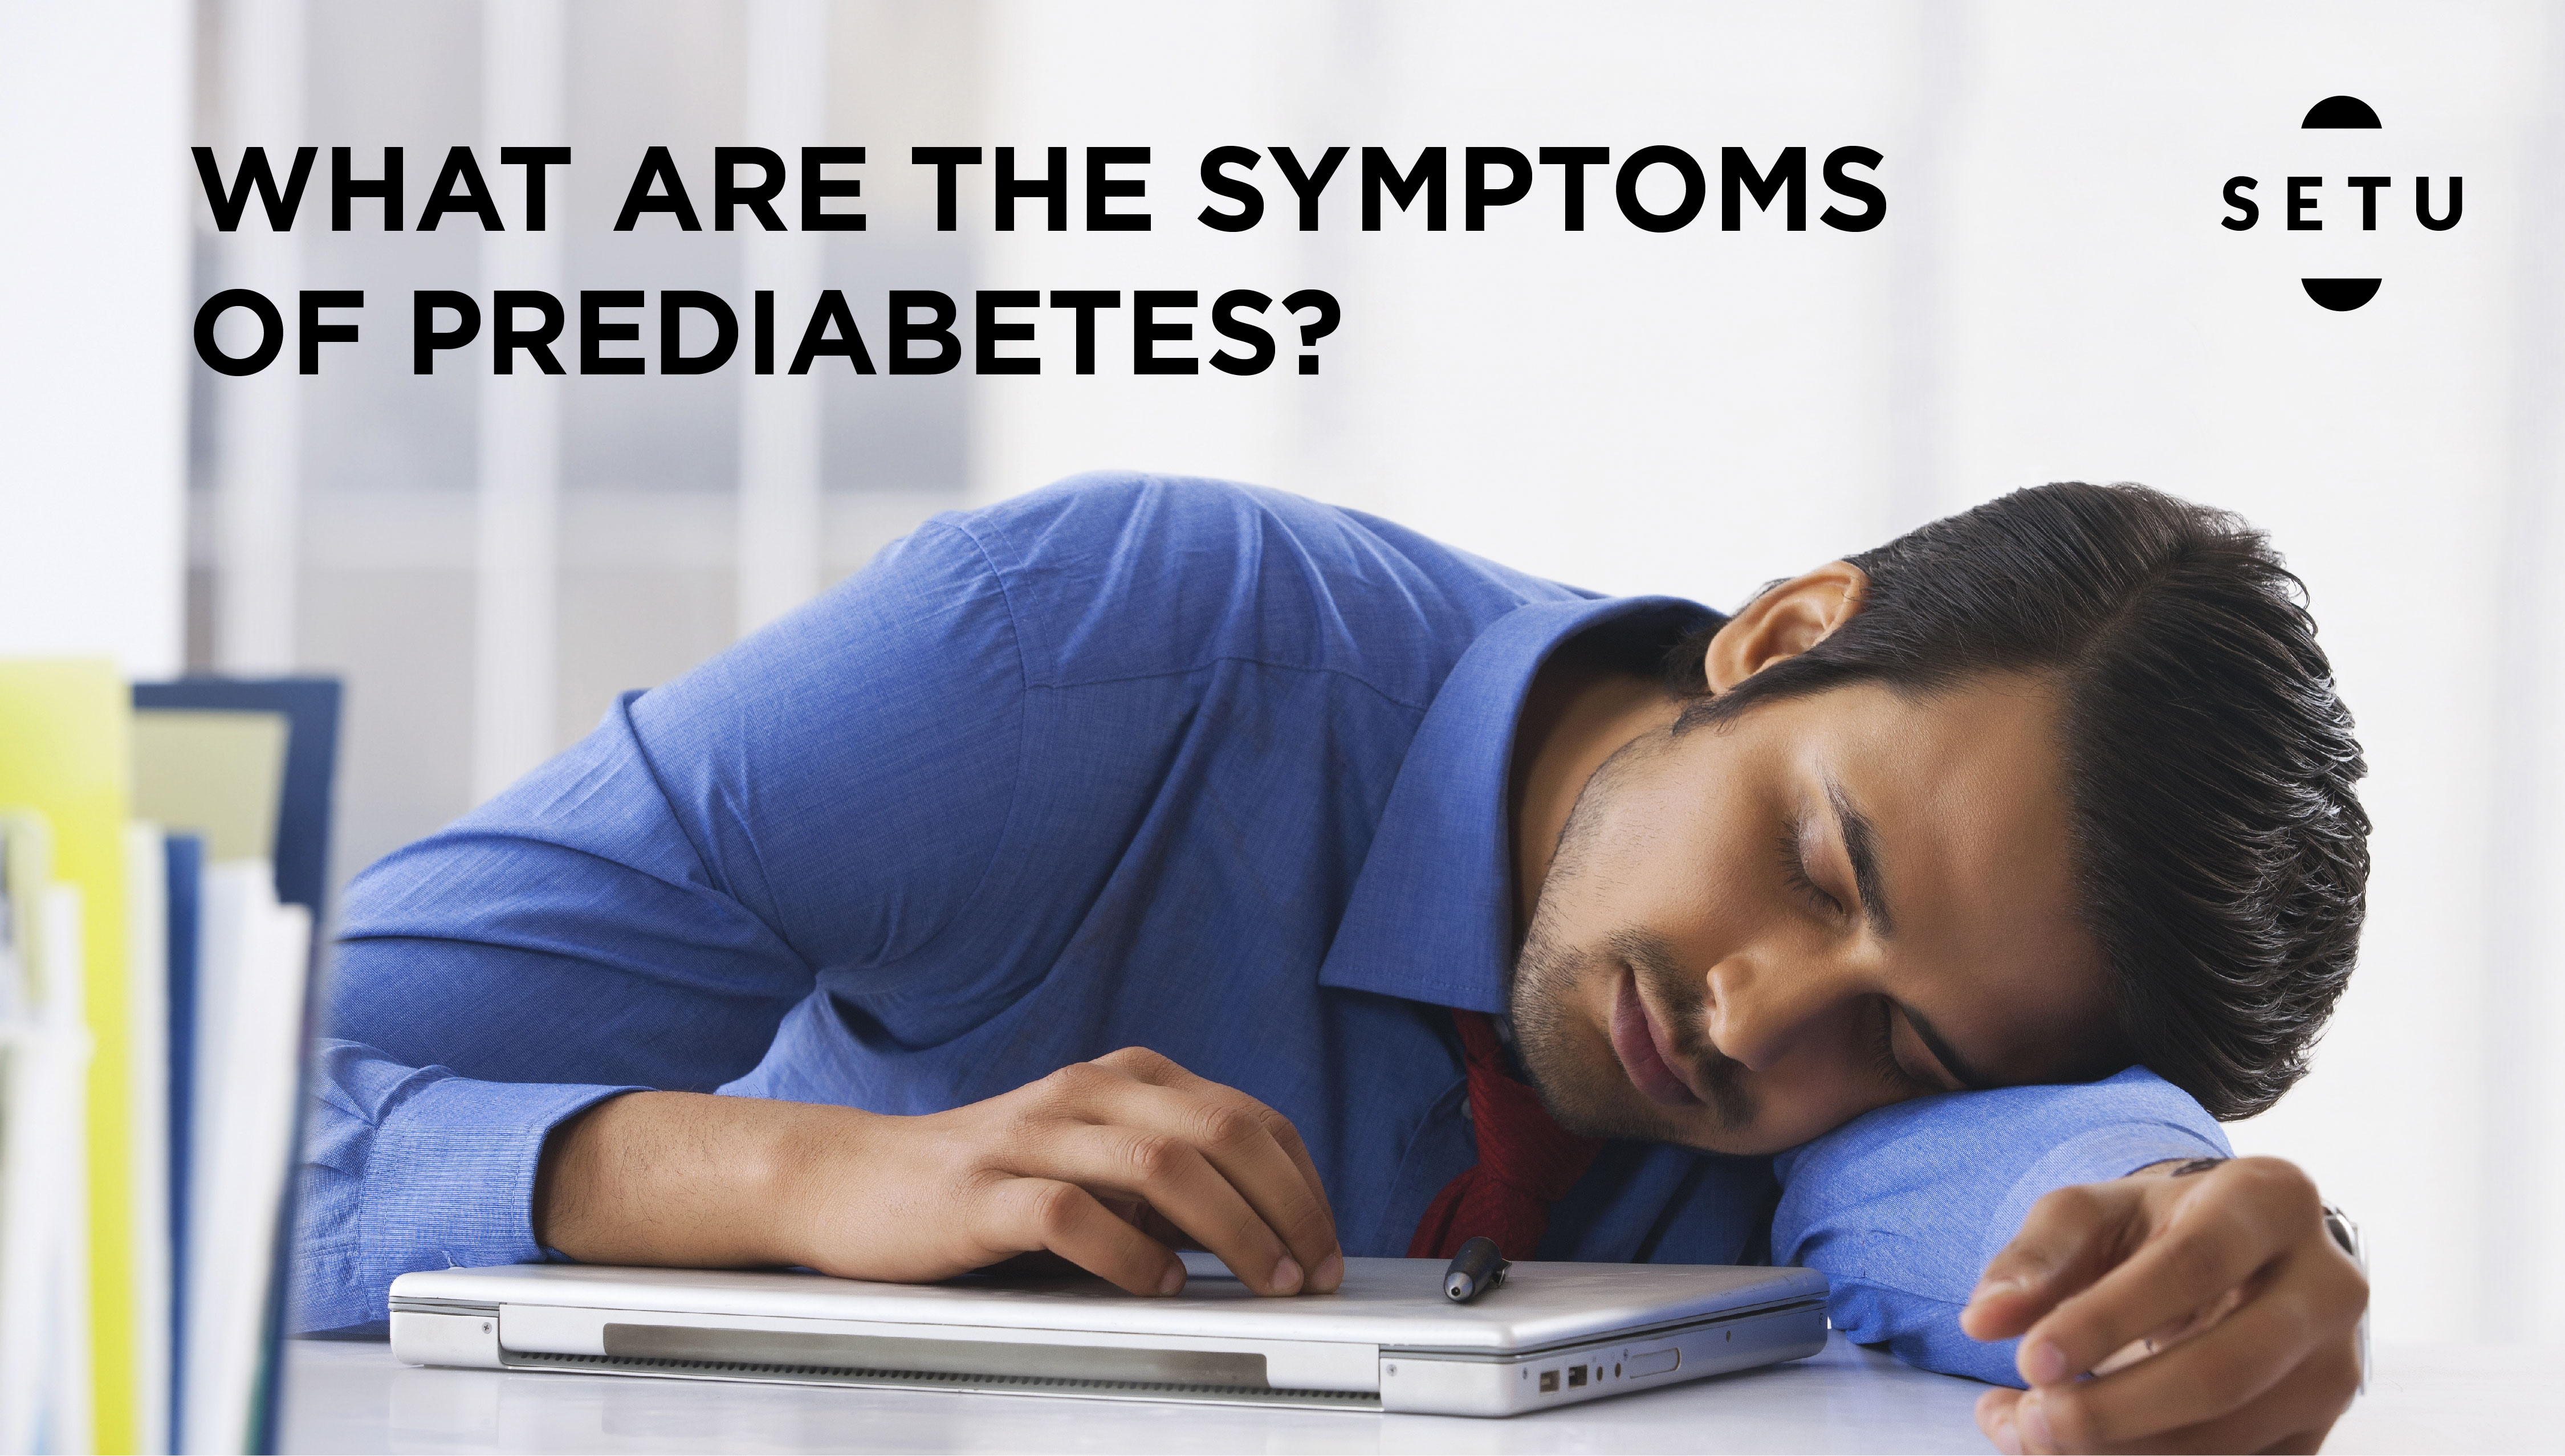 What Are The Symptoms Of Prediabetes?